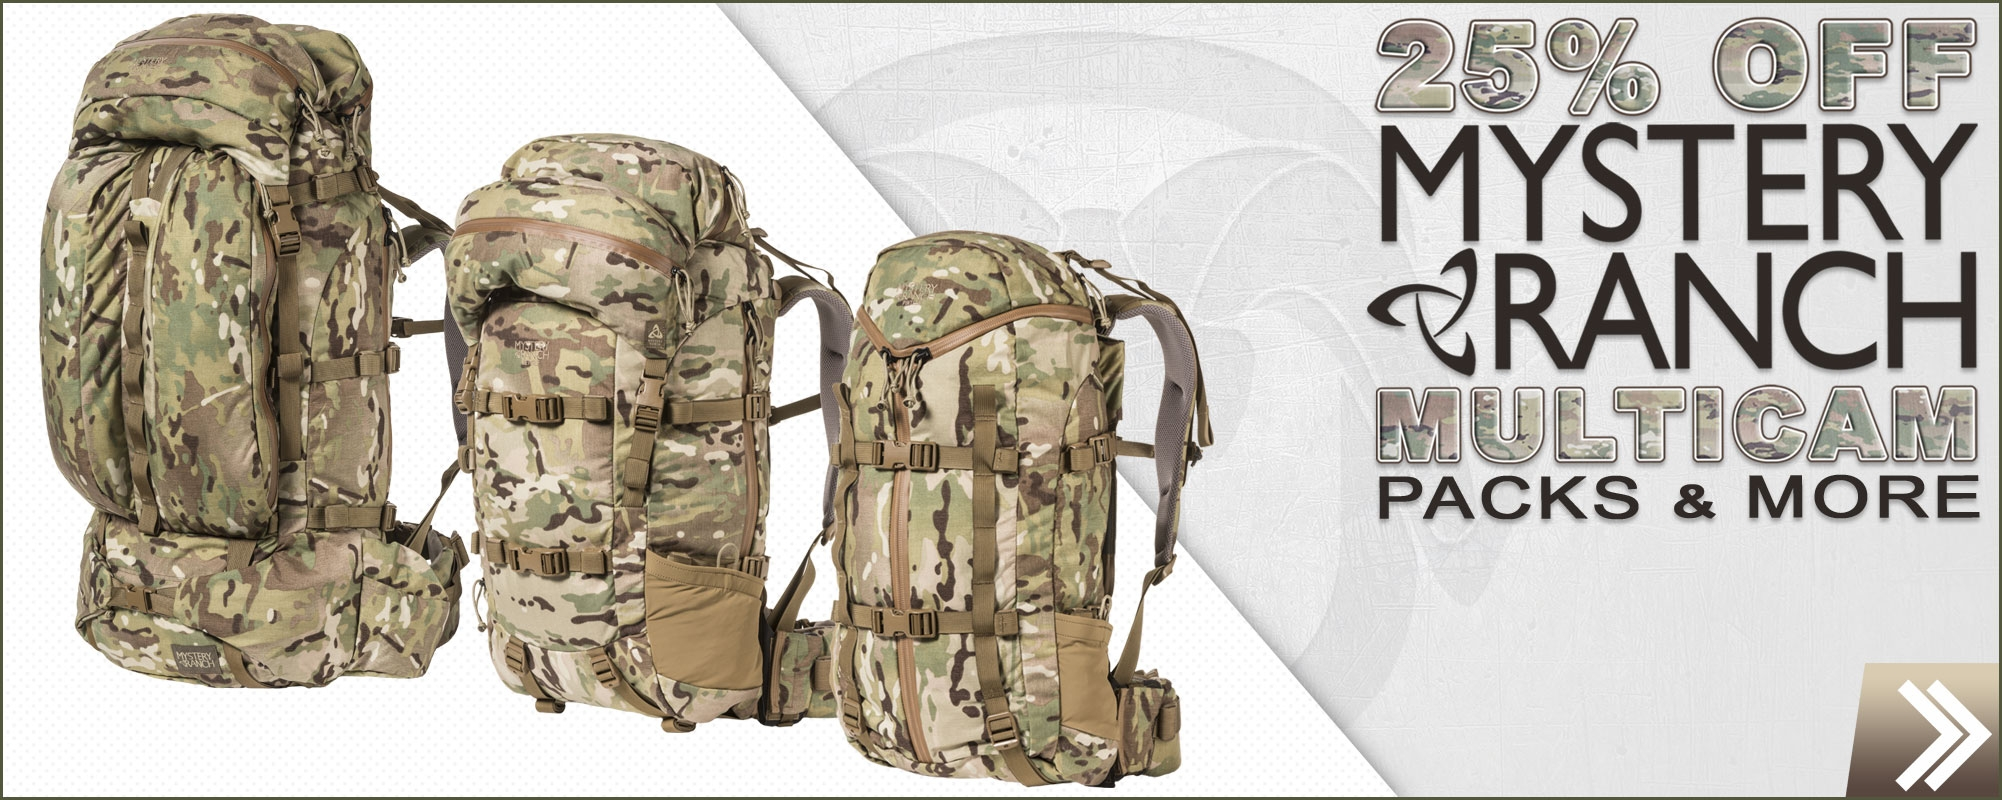 Save now on Multicam from Mystery Ranch